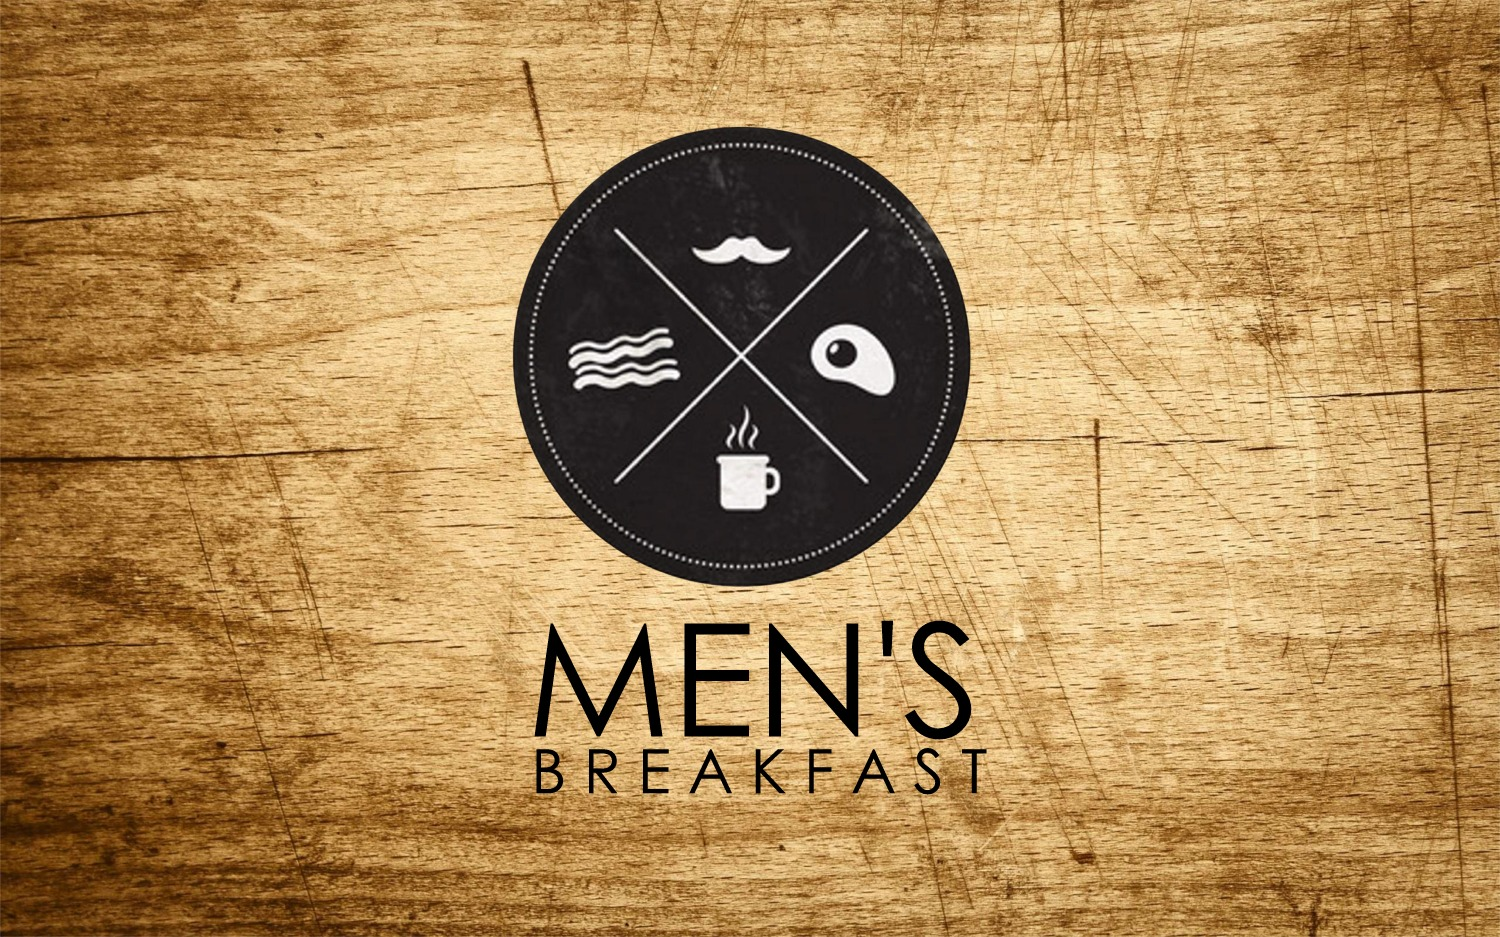 Men's Breakfast and Busy Bee